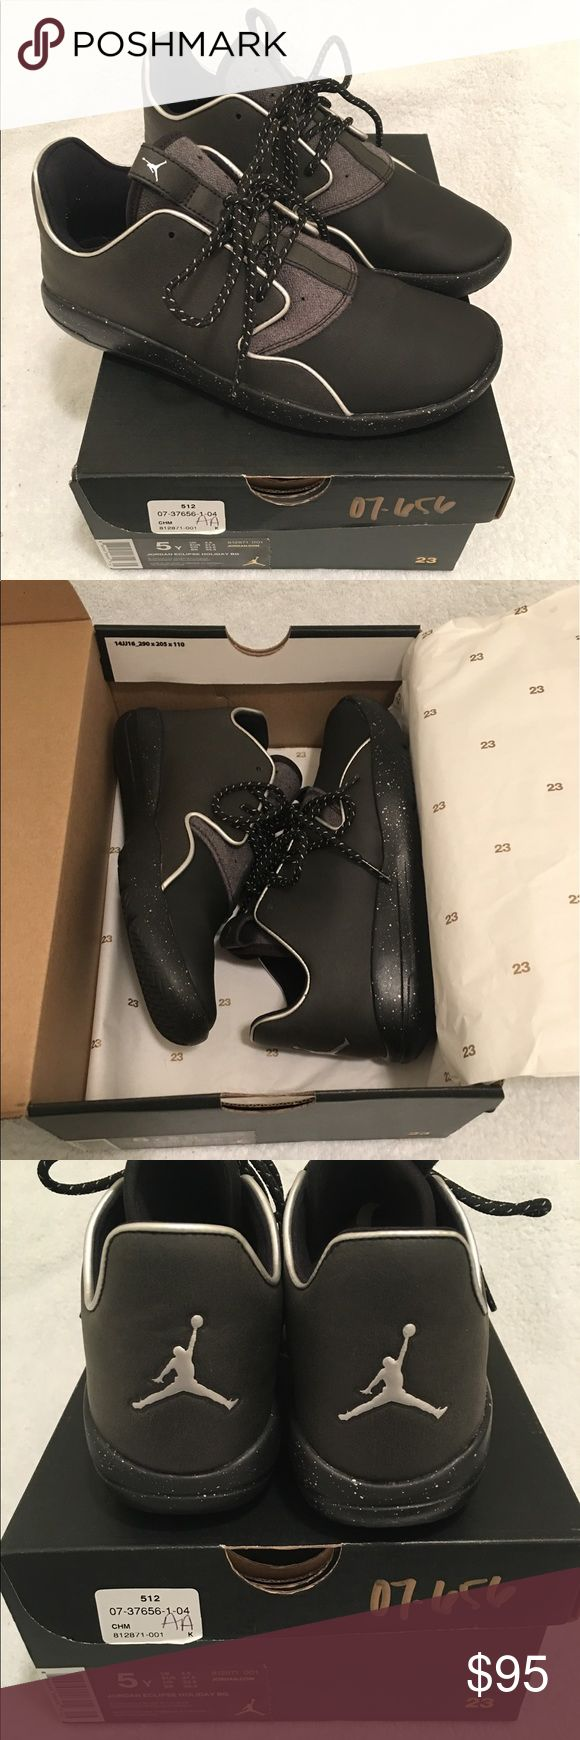 Jordan Eclipse Holiday BG Brand New Jordan Eclipse Holiday BG  Black/metallic silver Size 5Y boys  Or women's 6.5 Never worn. Still have box with paper inside. Jordan Shoes Athletic Shoes